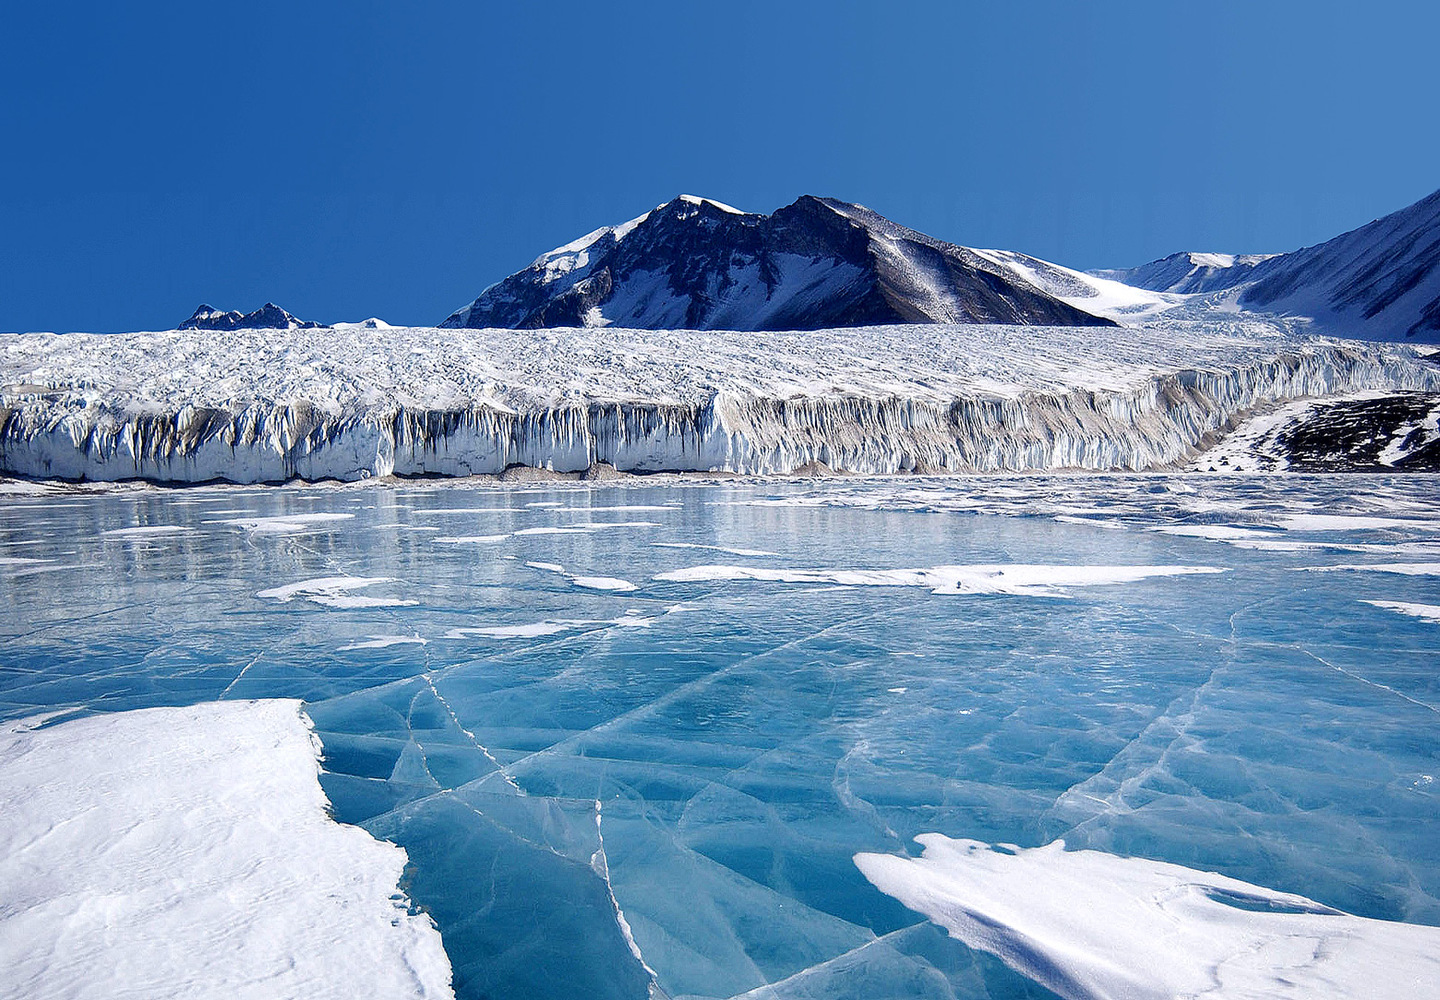 The blue ice covering Lake Fryxell, in the Transantarctic Mountains